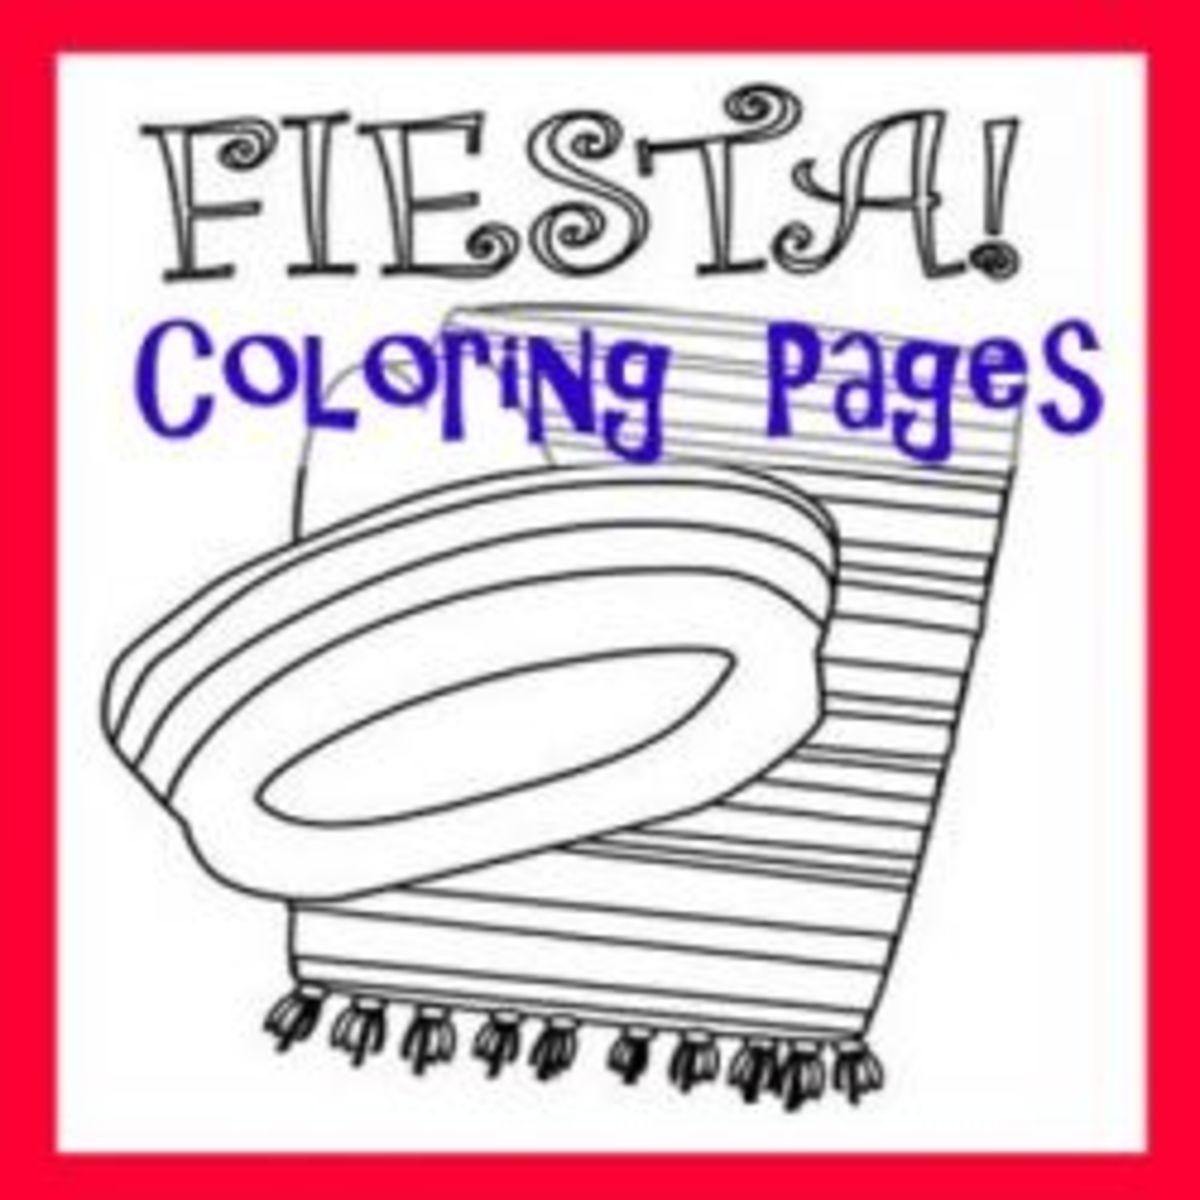 Coloring Fiesta - Cinco de Mayo Arts and Crafts